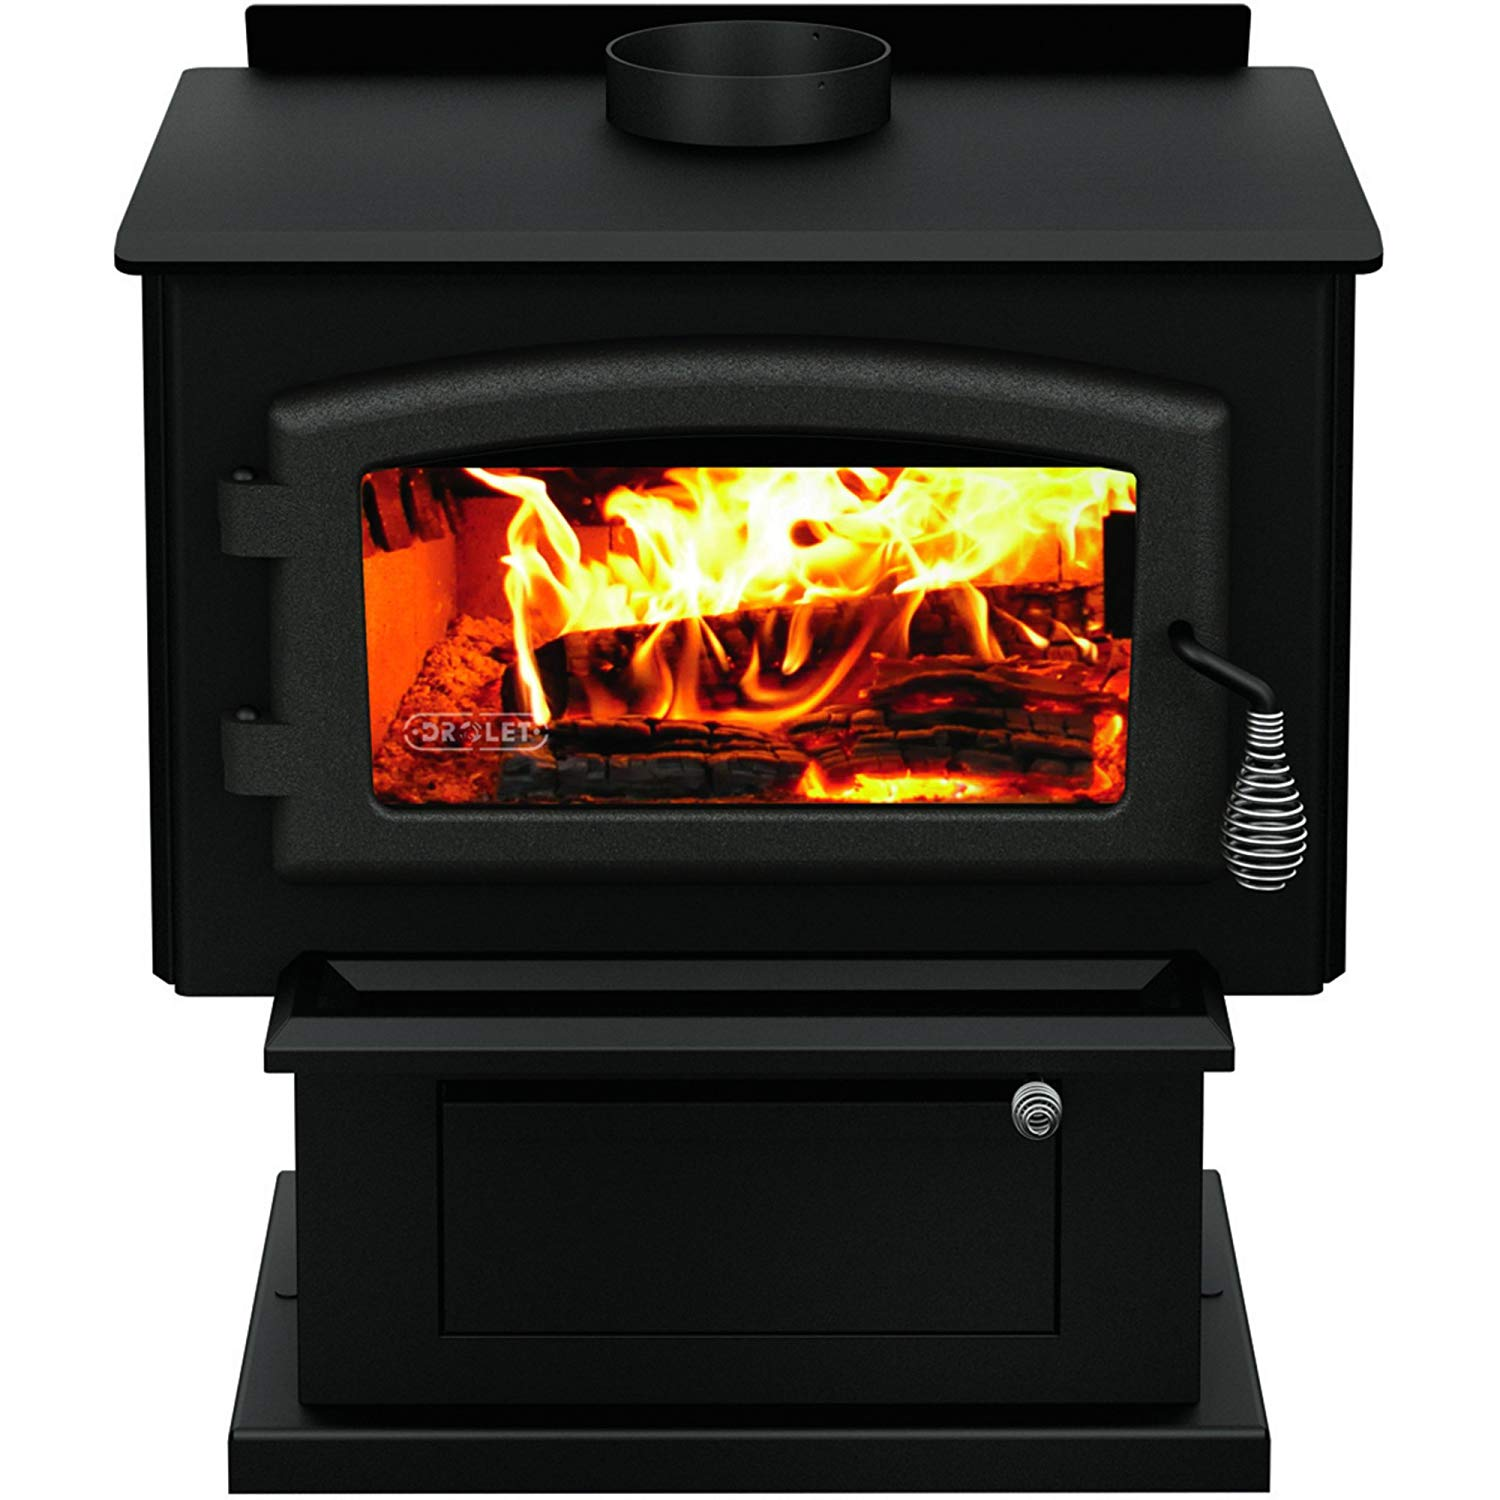 Best Wood Burning Stoves In June 2020 Top 8 Rated Reviews